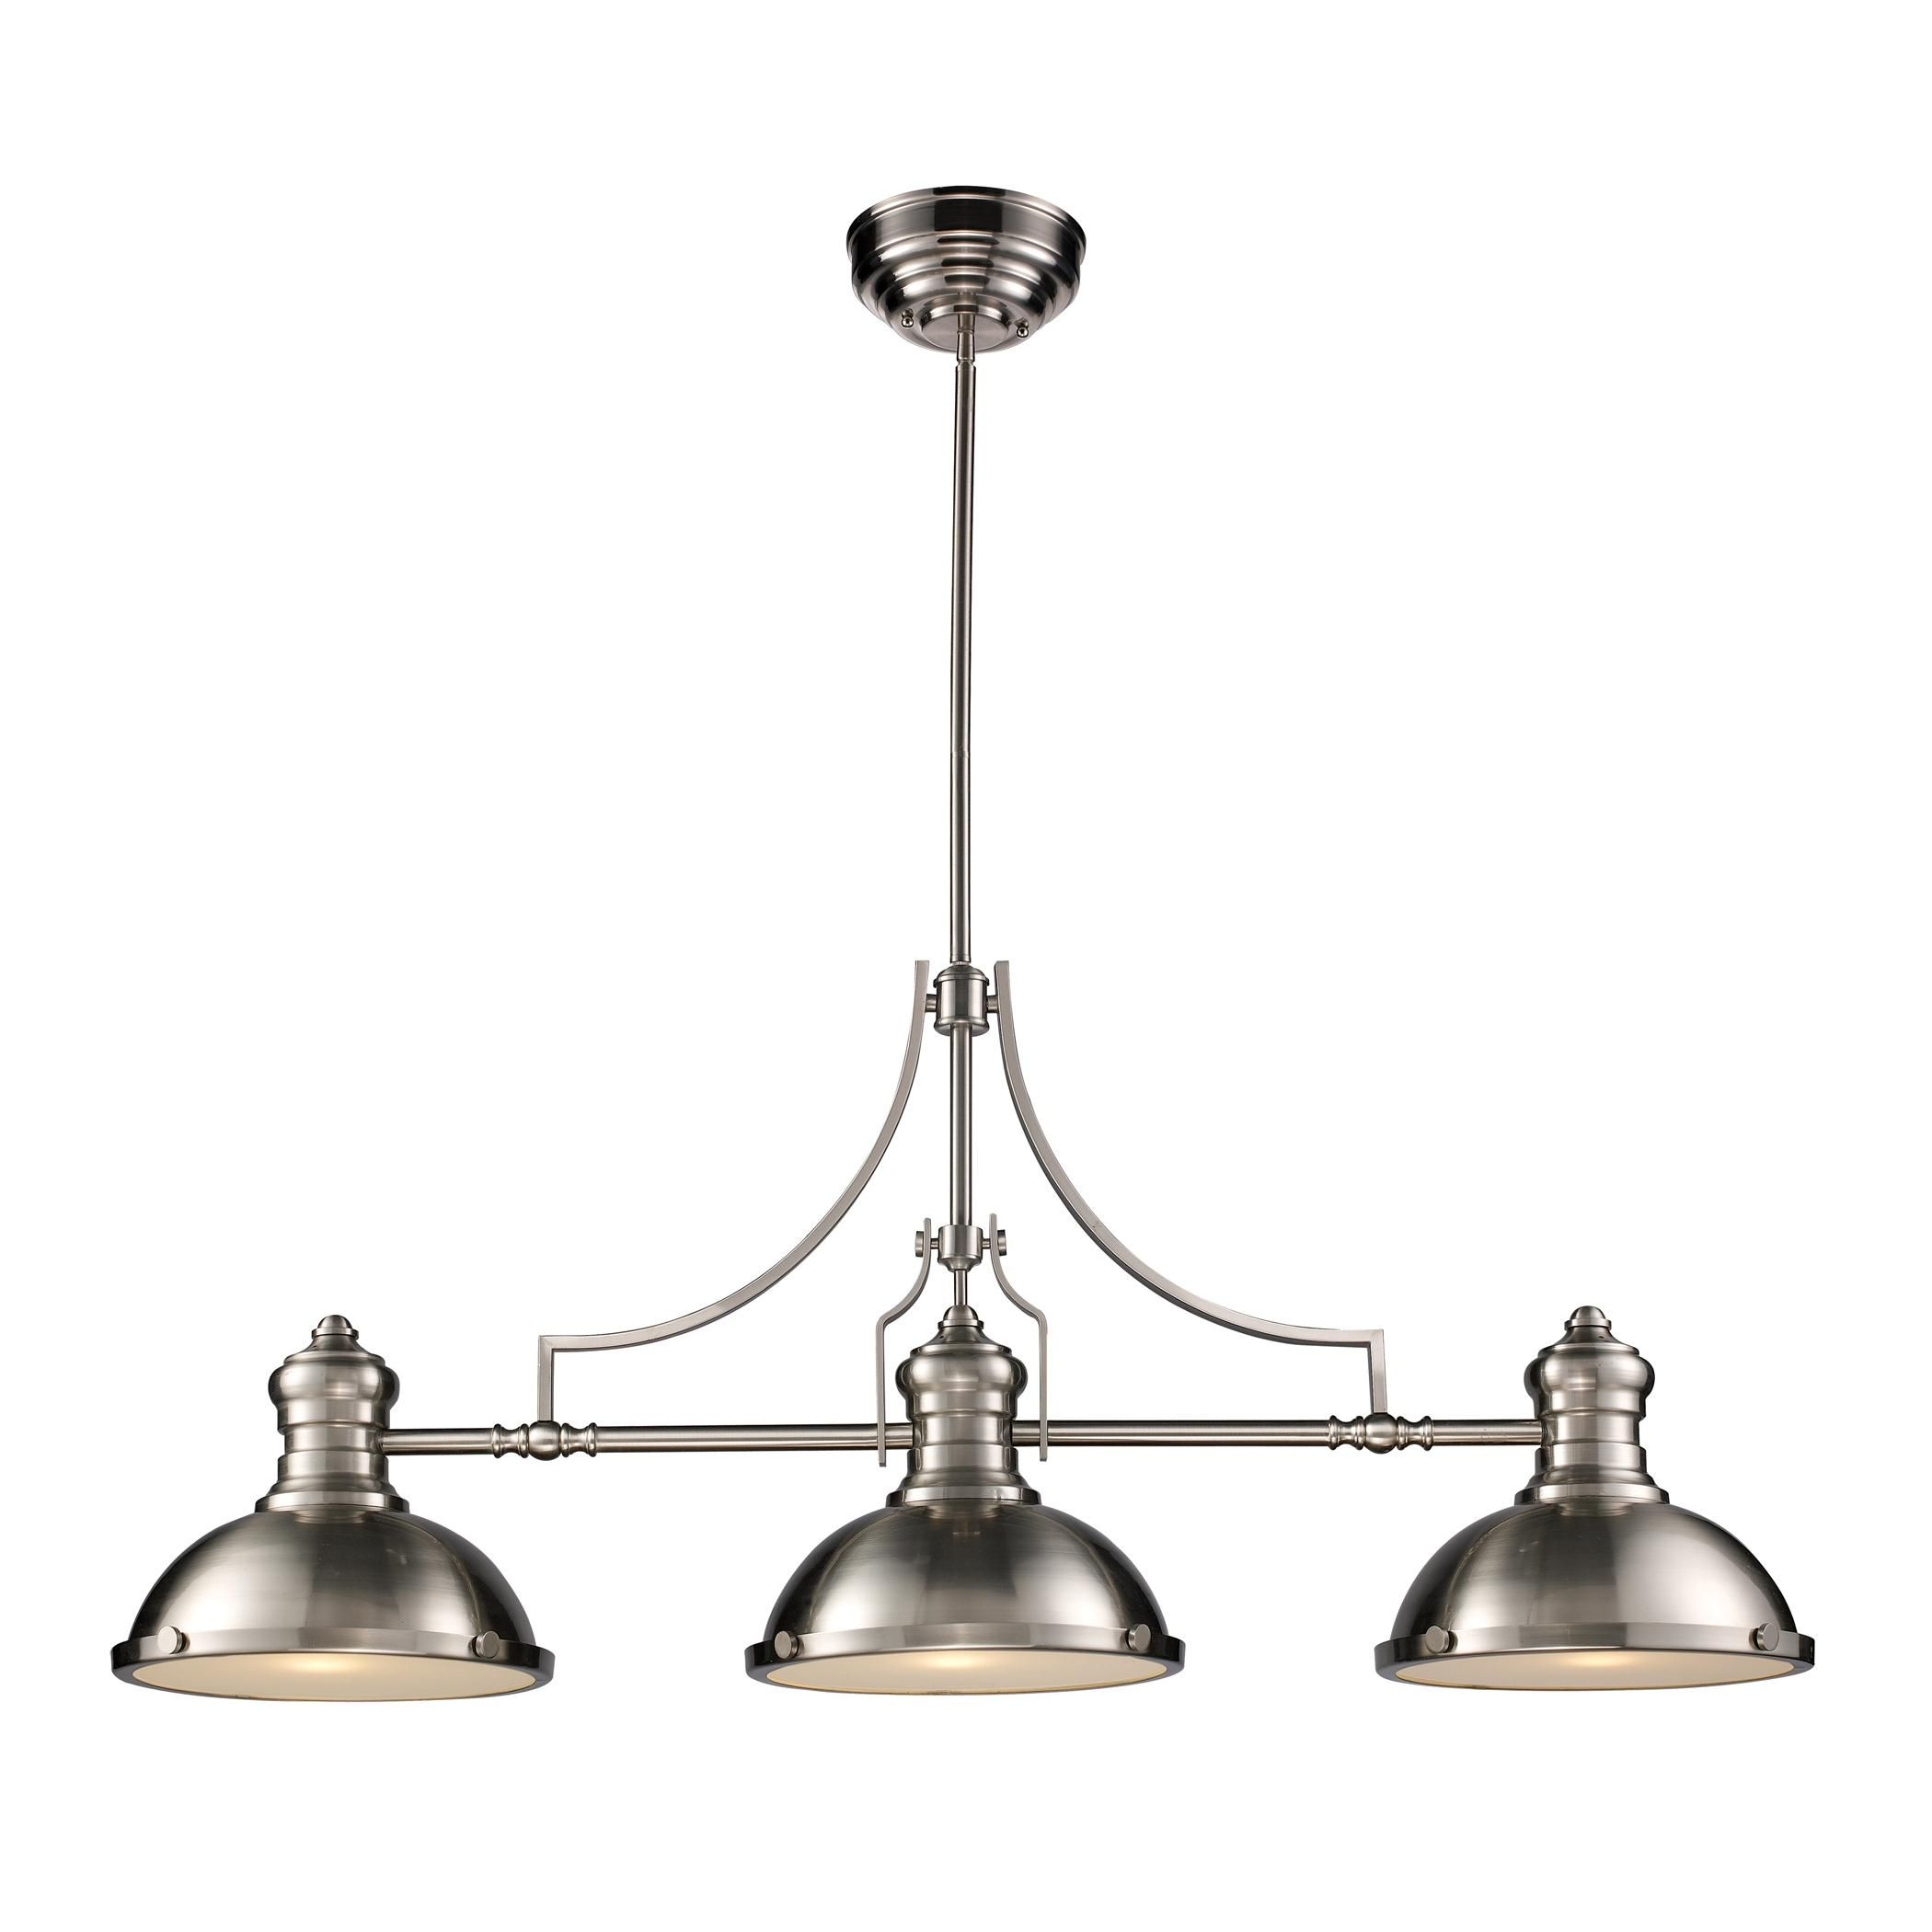 Chadwick 3 light billiard in satin nickel pool table lights and chadwick 3 light billiard in satin nickel 66125 3 elite fixtures arubaitofo Choice Image